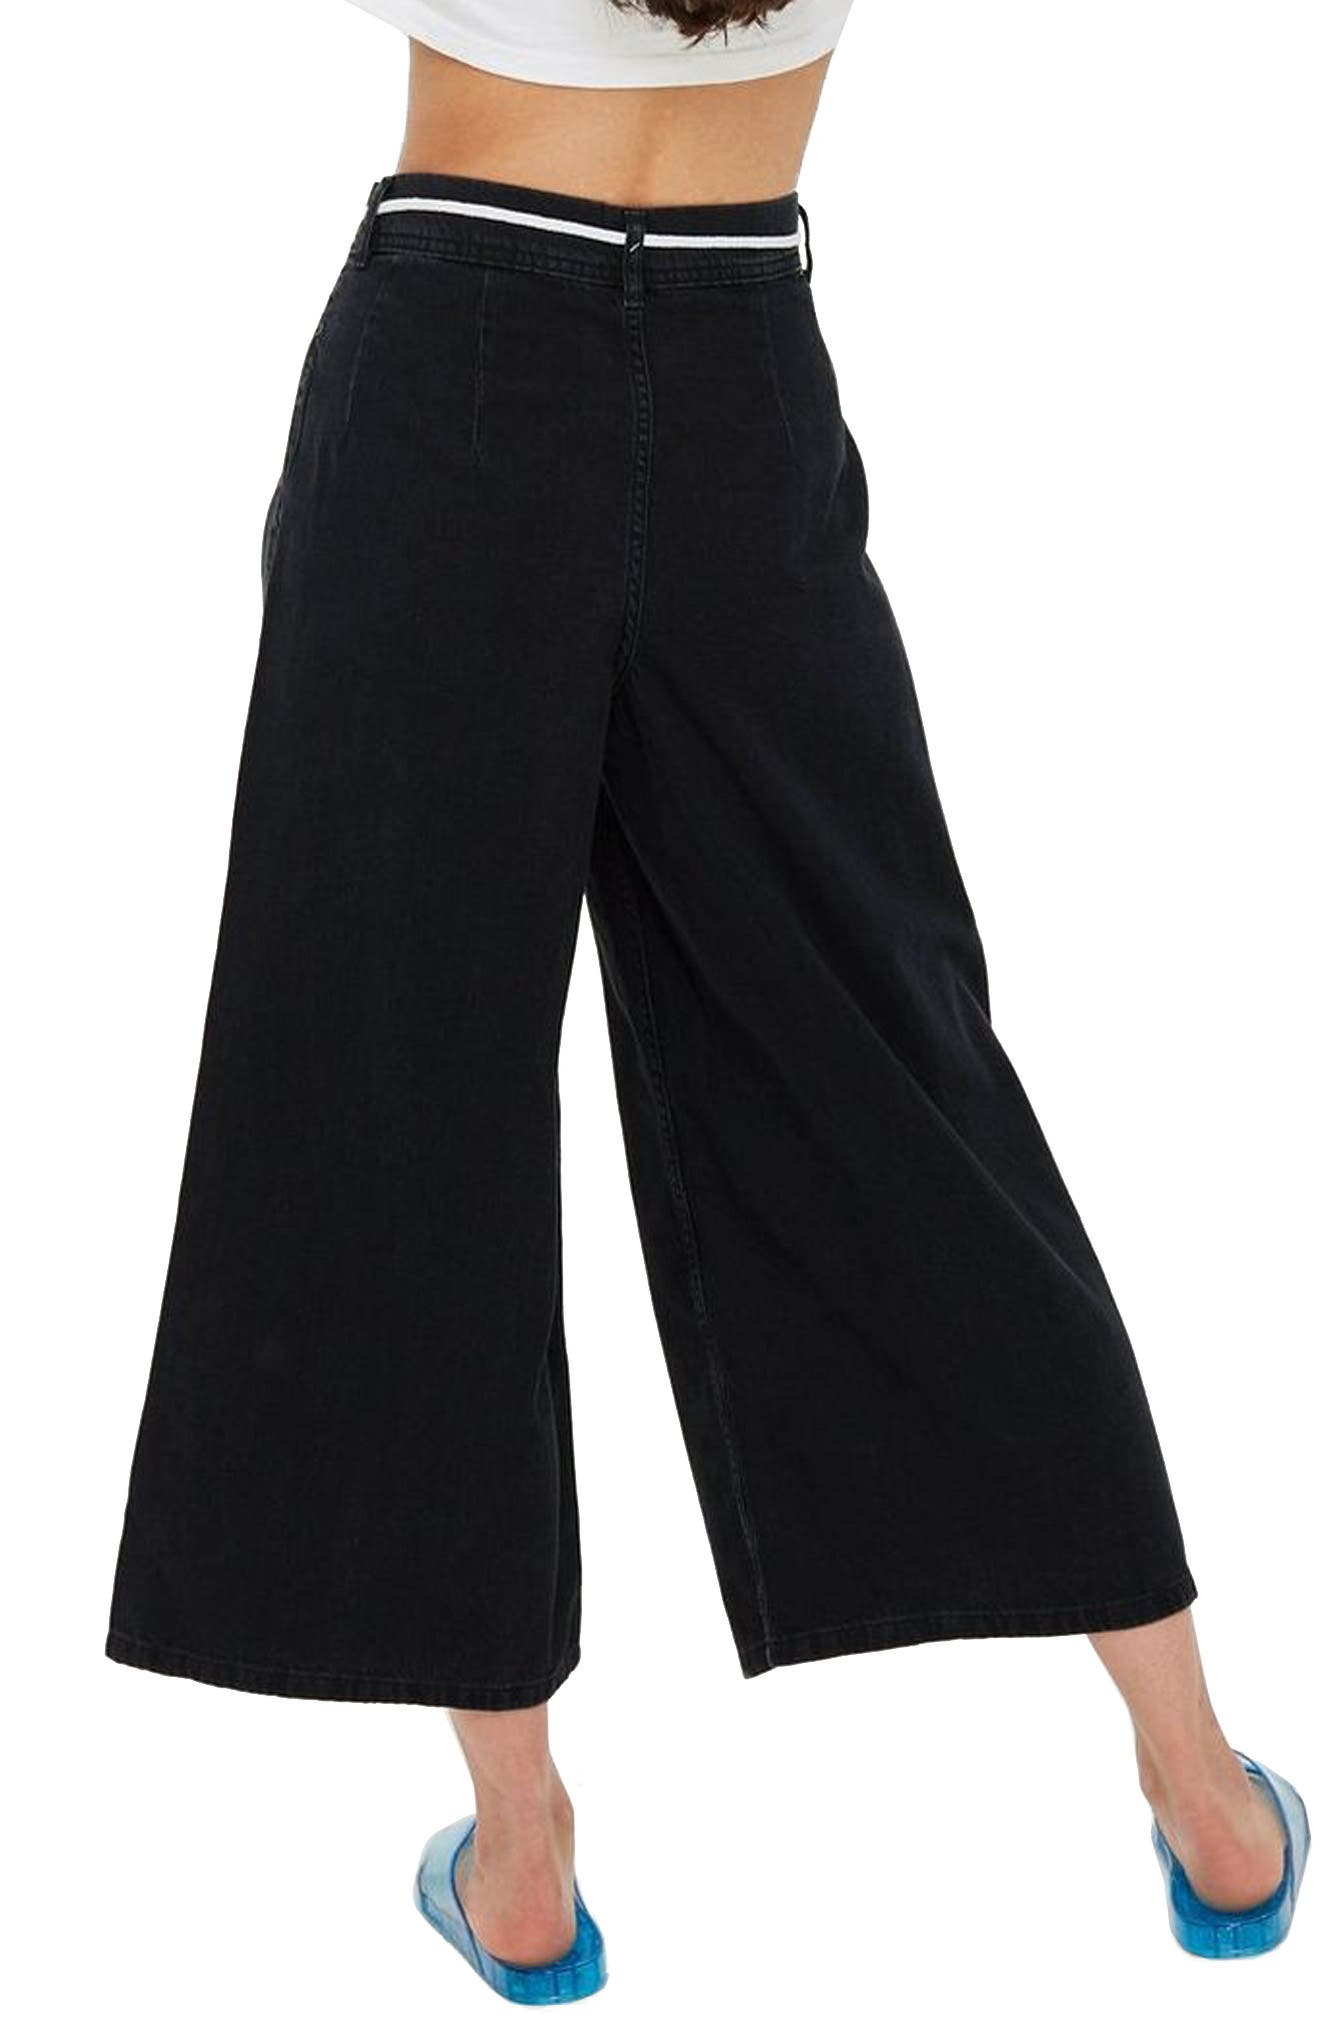 MOTO Pleated Tie Crop Jeans,                             Alternate thumbnail 2, color,                             Washed Black